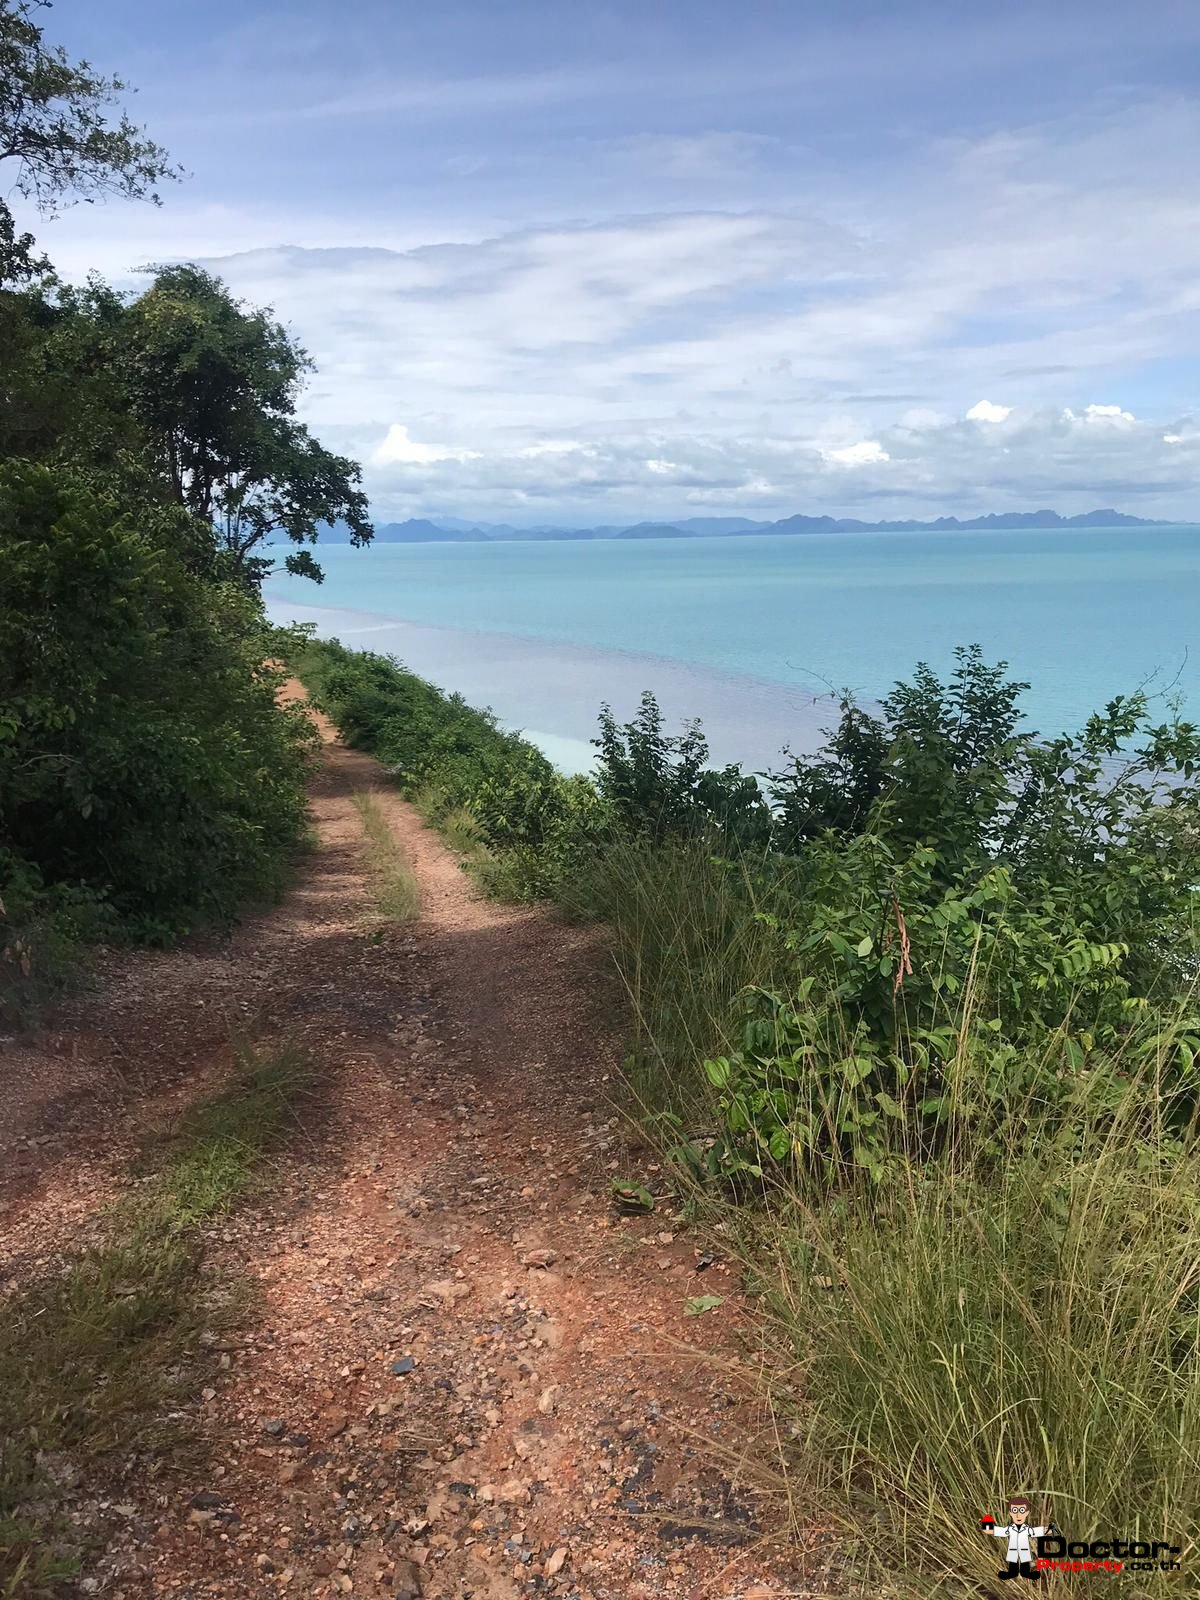 4 Rai Beachfront Land - Taling Ngam - Koh Samui - for sale 1